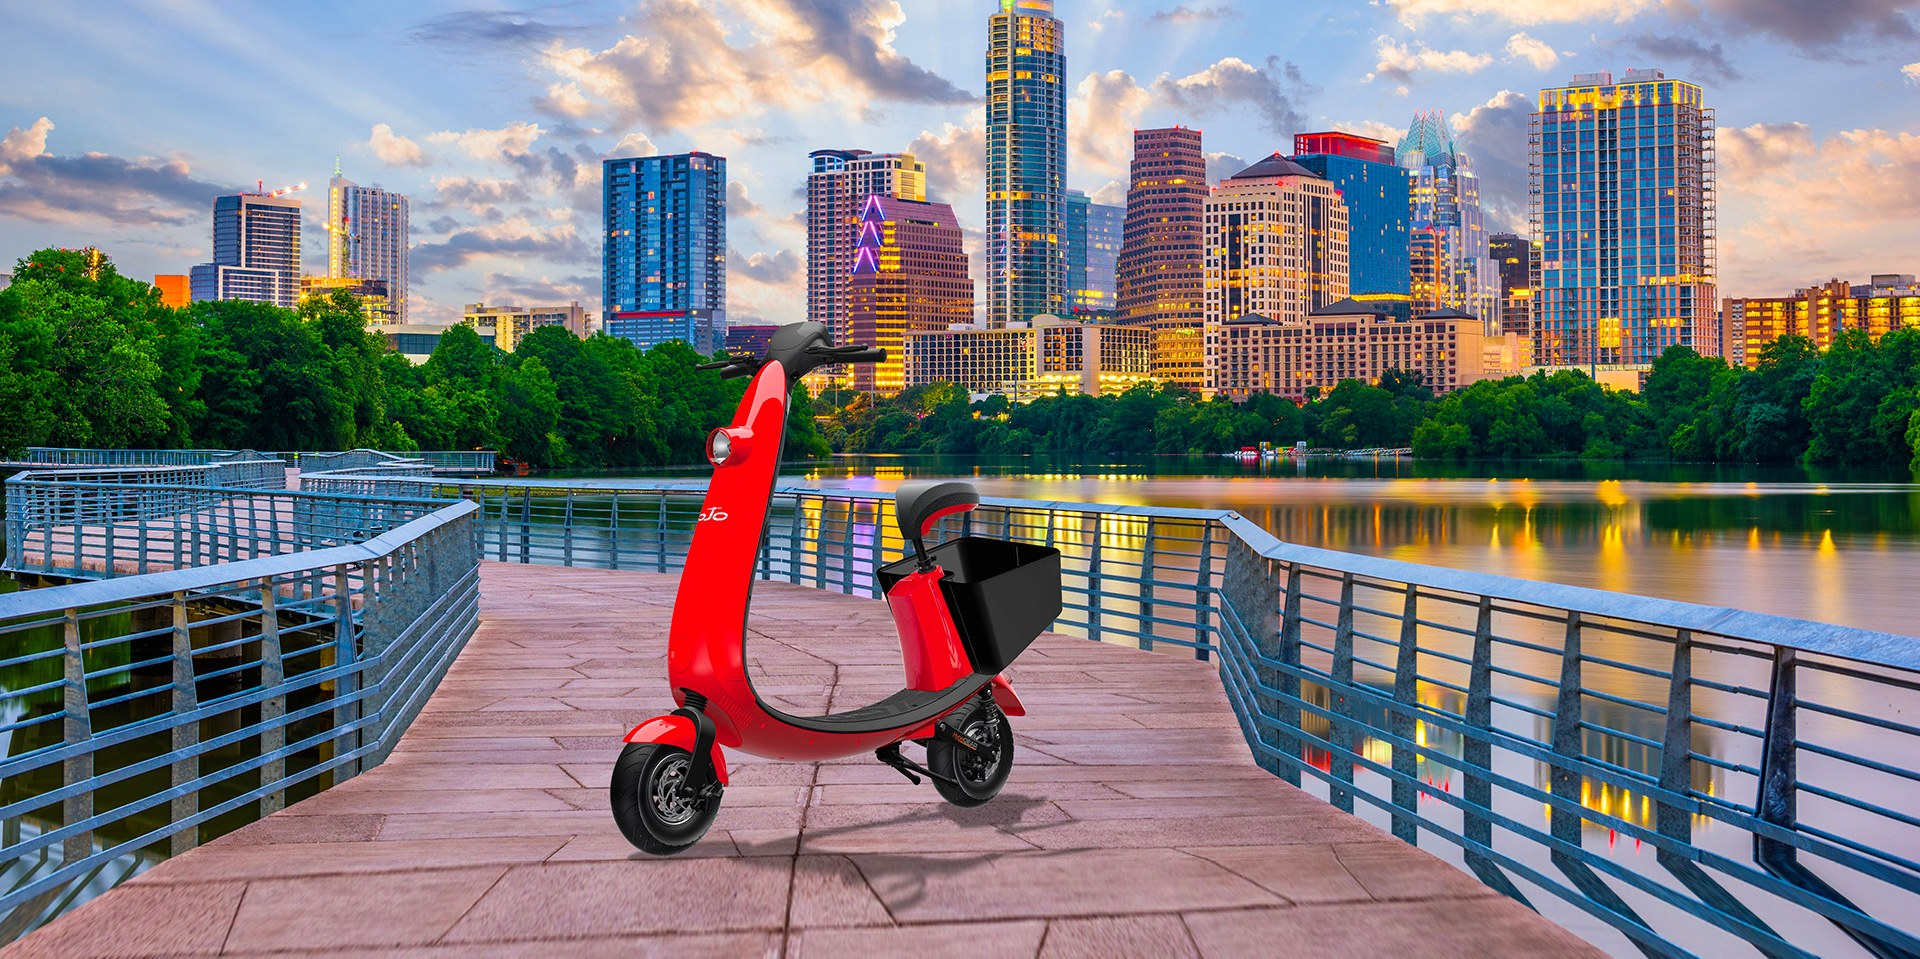 Sit or stand? New electric scooter share OjO to offer vespa-style e-scooters